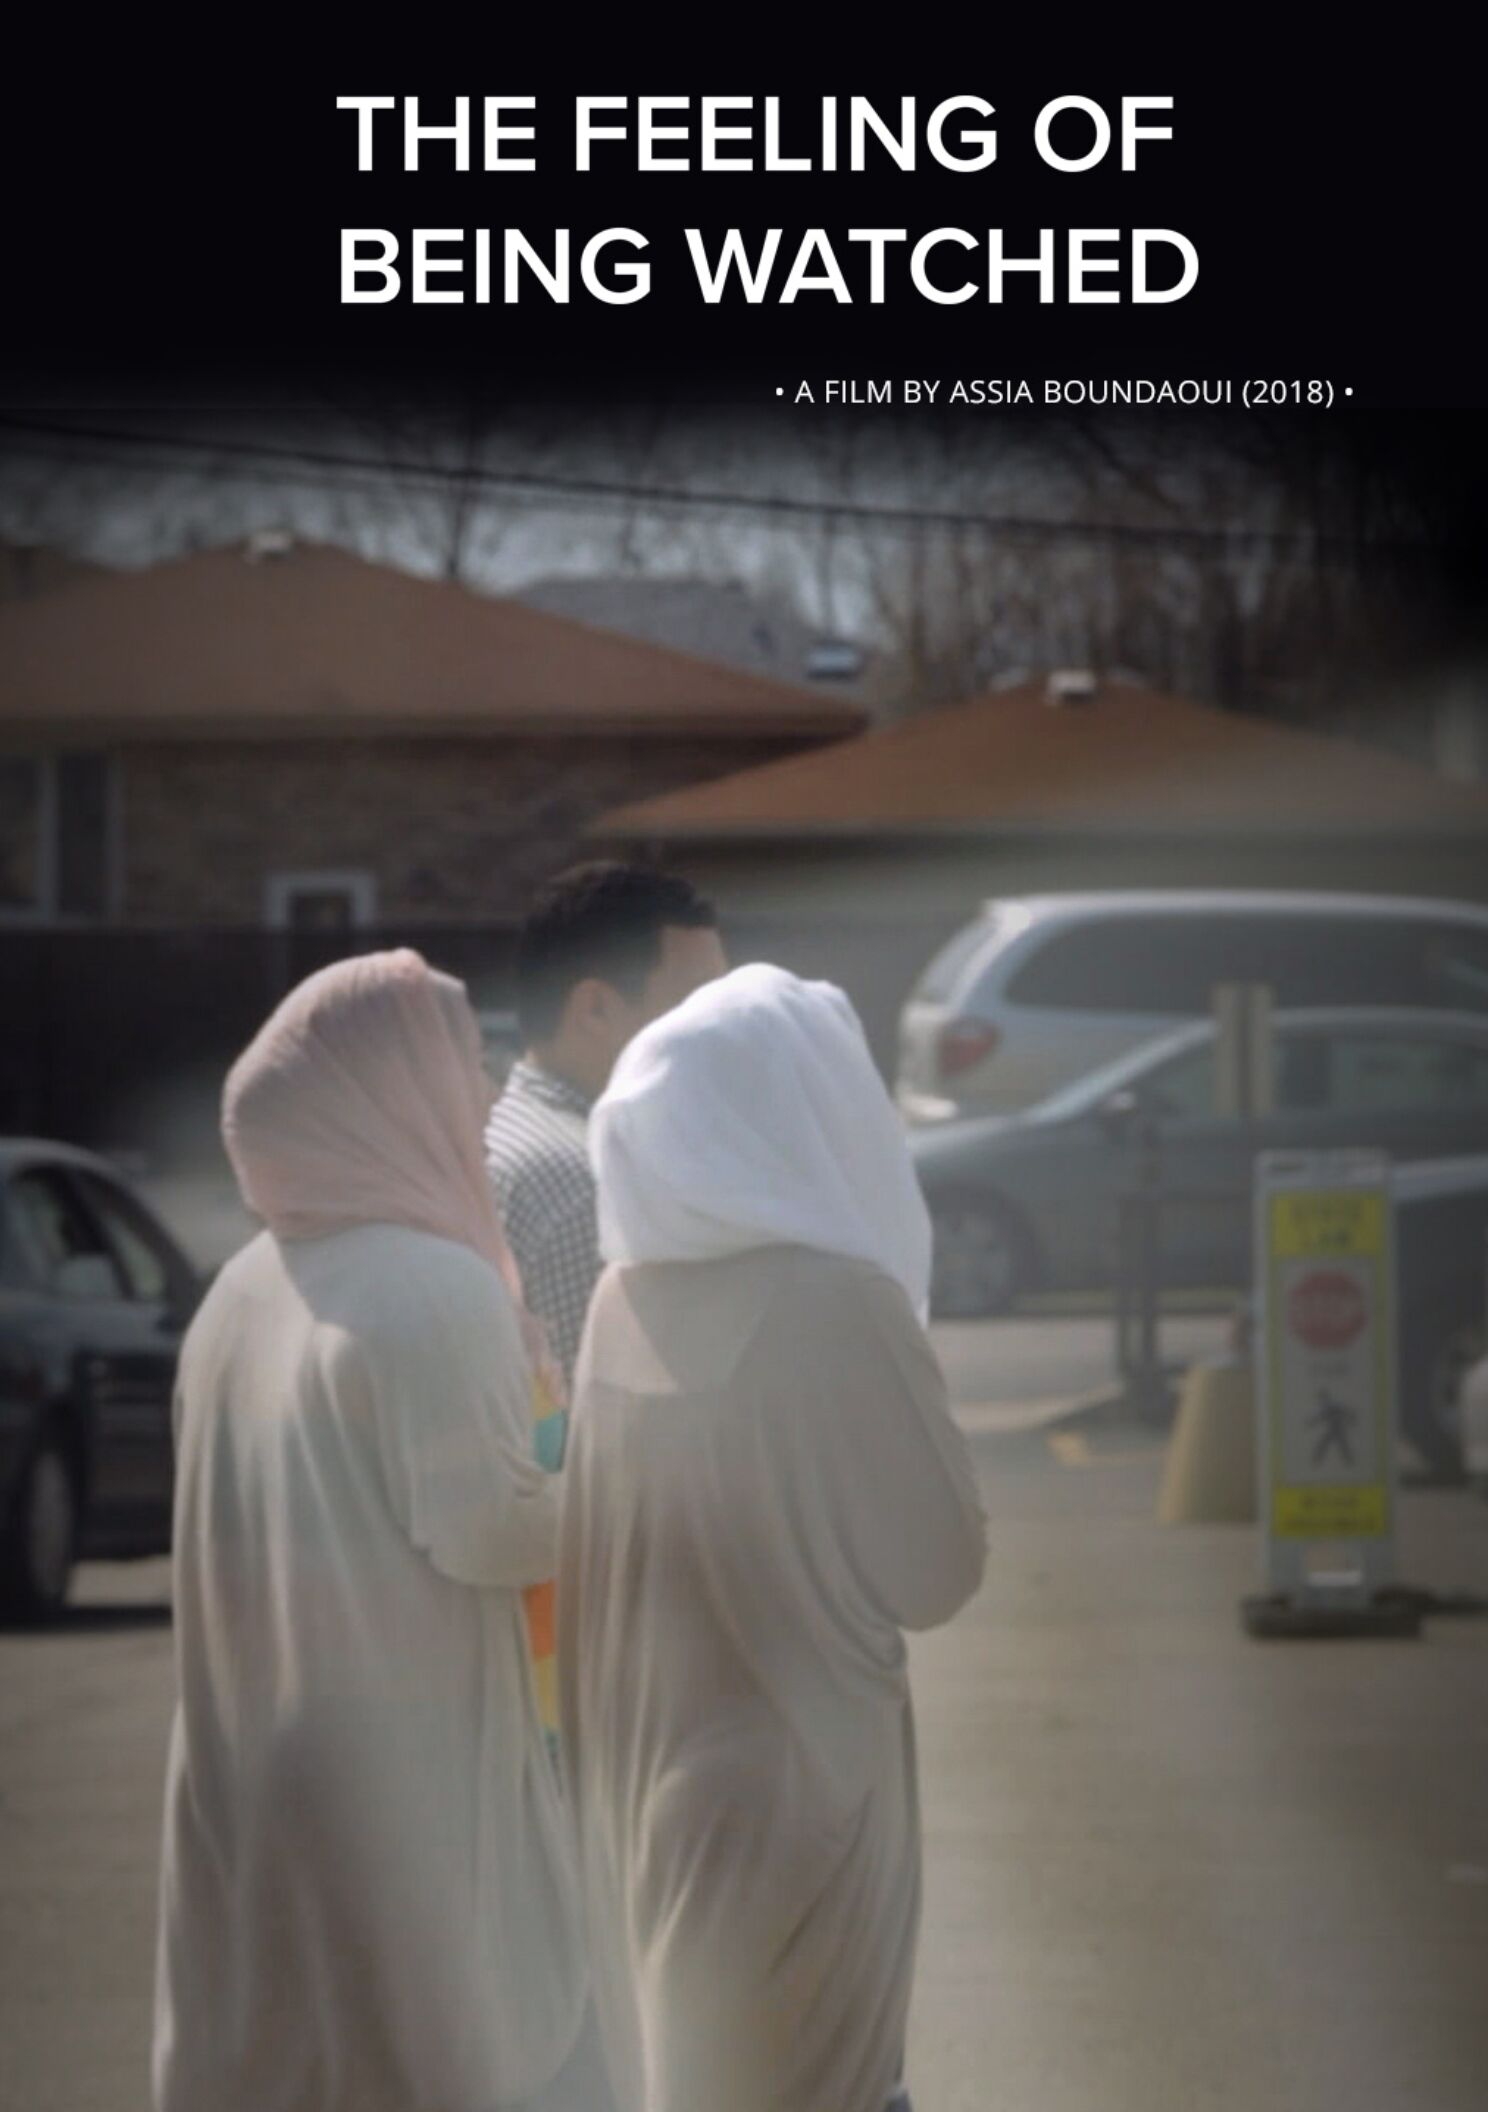 the feeling of being watched - OVERVIEW: In the Chicago suburb where journalist Assia Boundaoui grew up, most residents in her Muslim immigrant neighborhood believe they are under surveillance. Assia investigates and uncovers FBI documents about